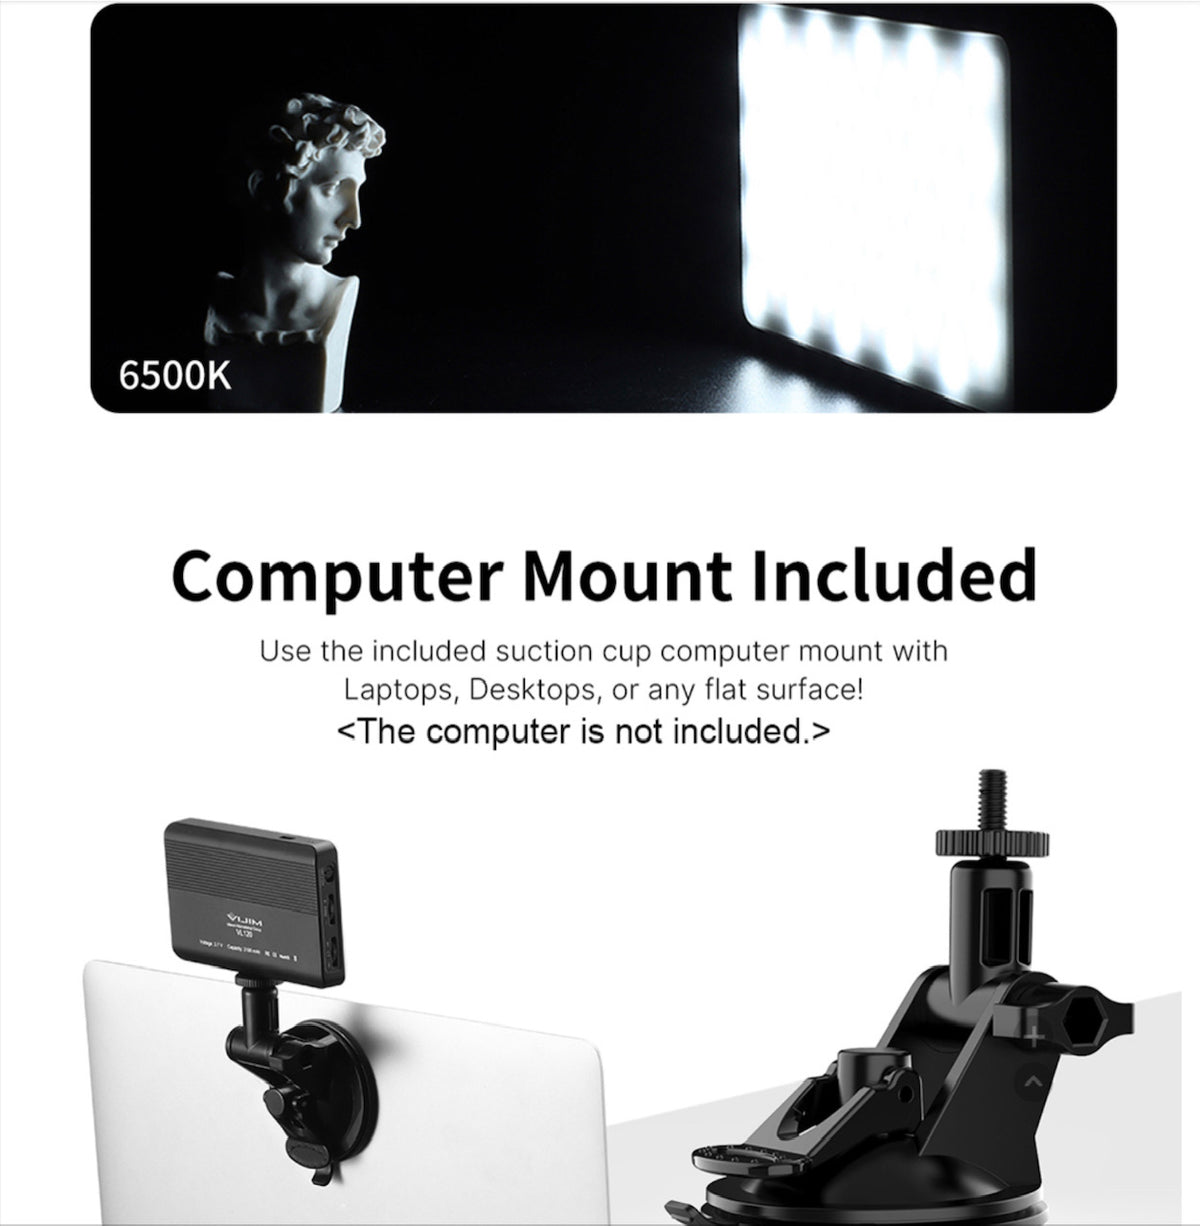 Video Conference Lighting Kit with 3200K-6500K LED Video Light/ Suction Cup/Silicon Cover/Cold Shoe Mount Adapter/Color Filters